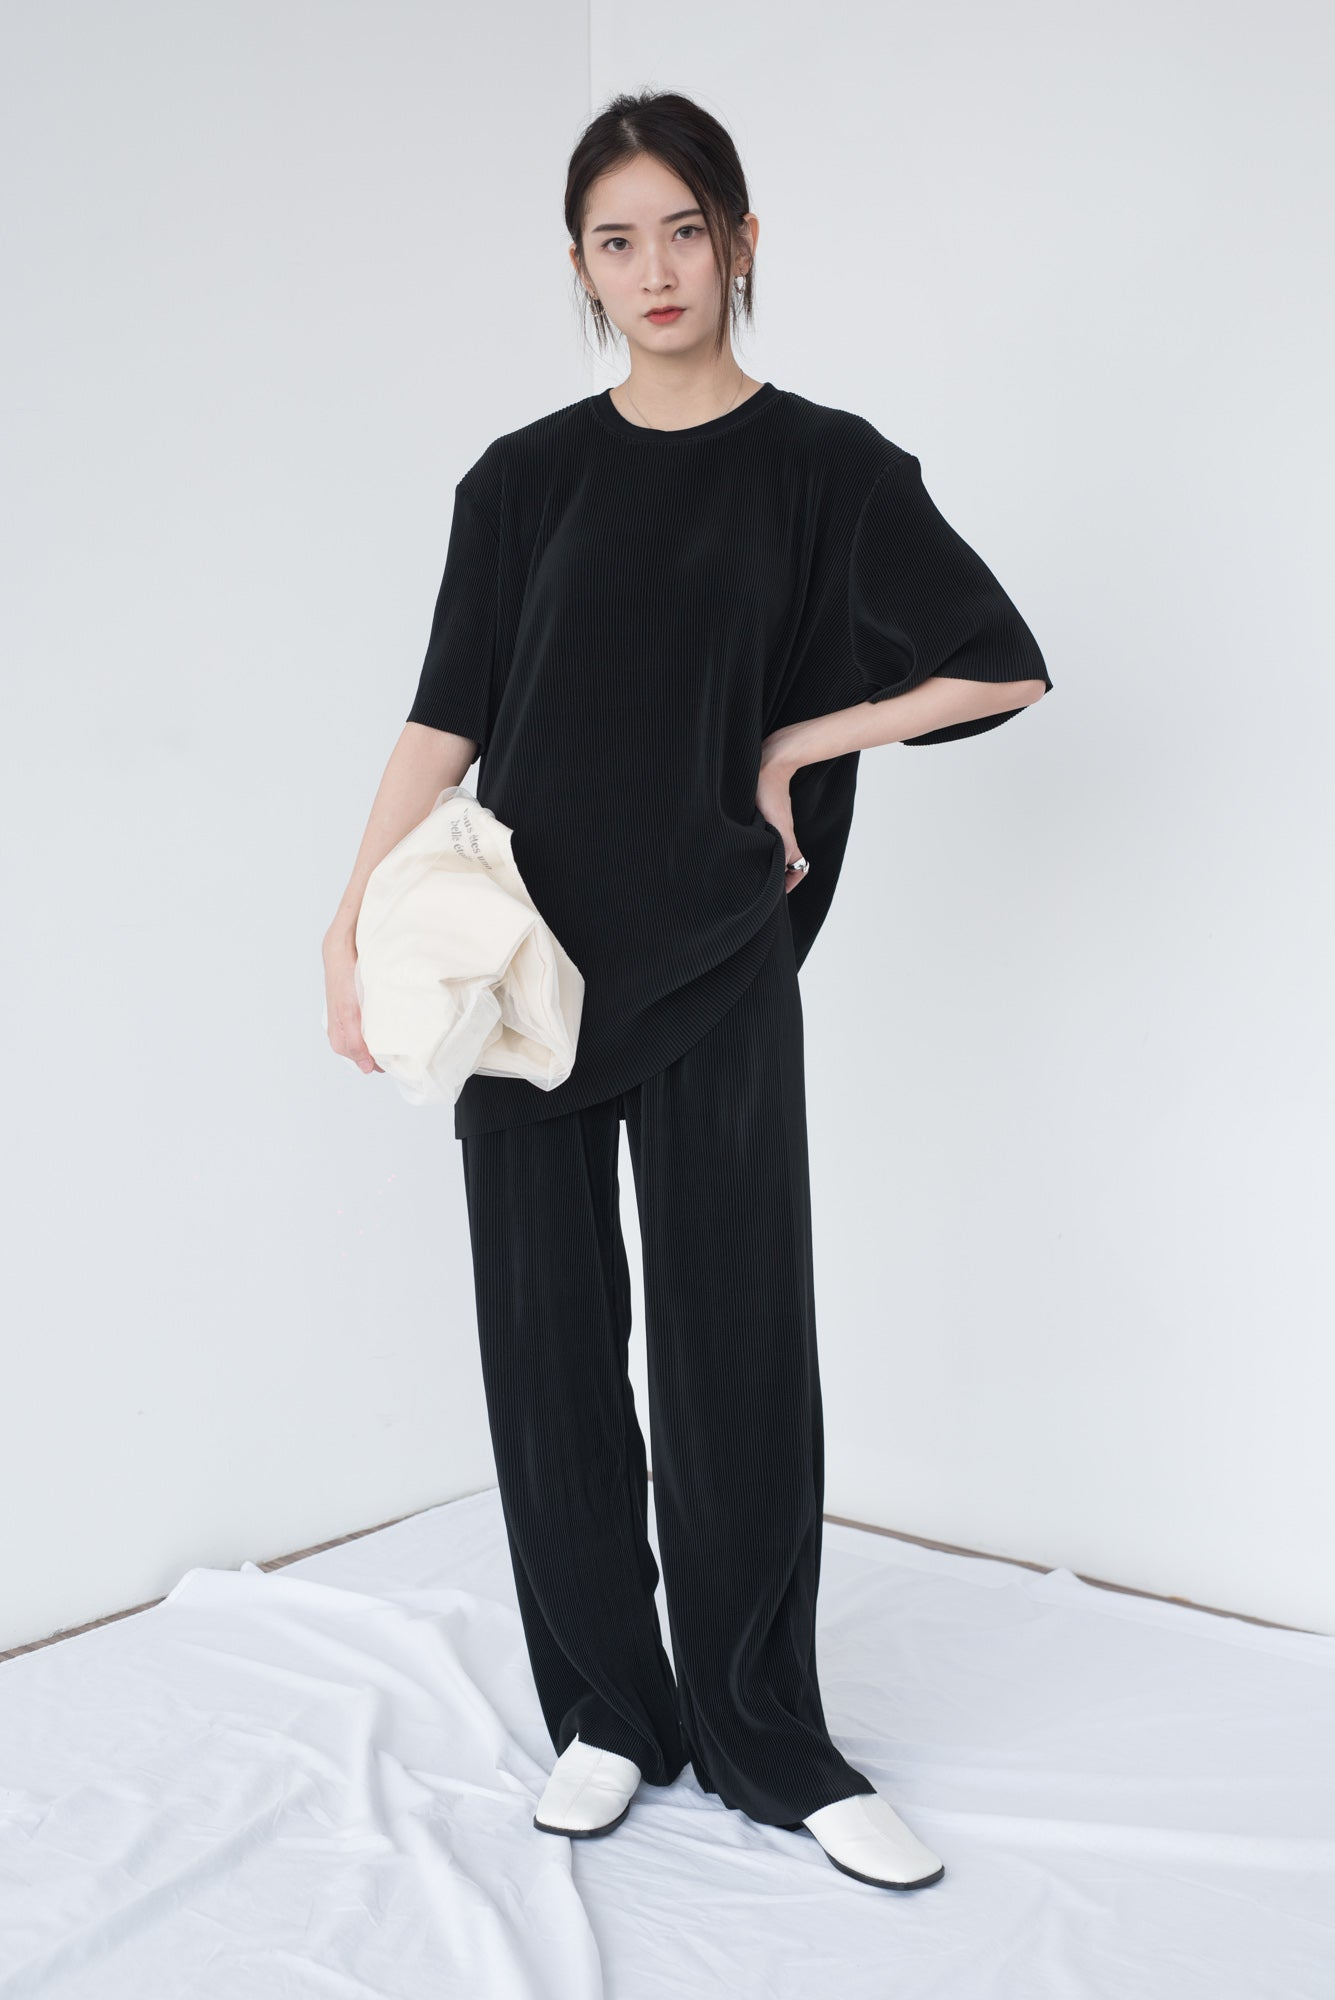 Loose moped trousers in classic black